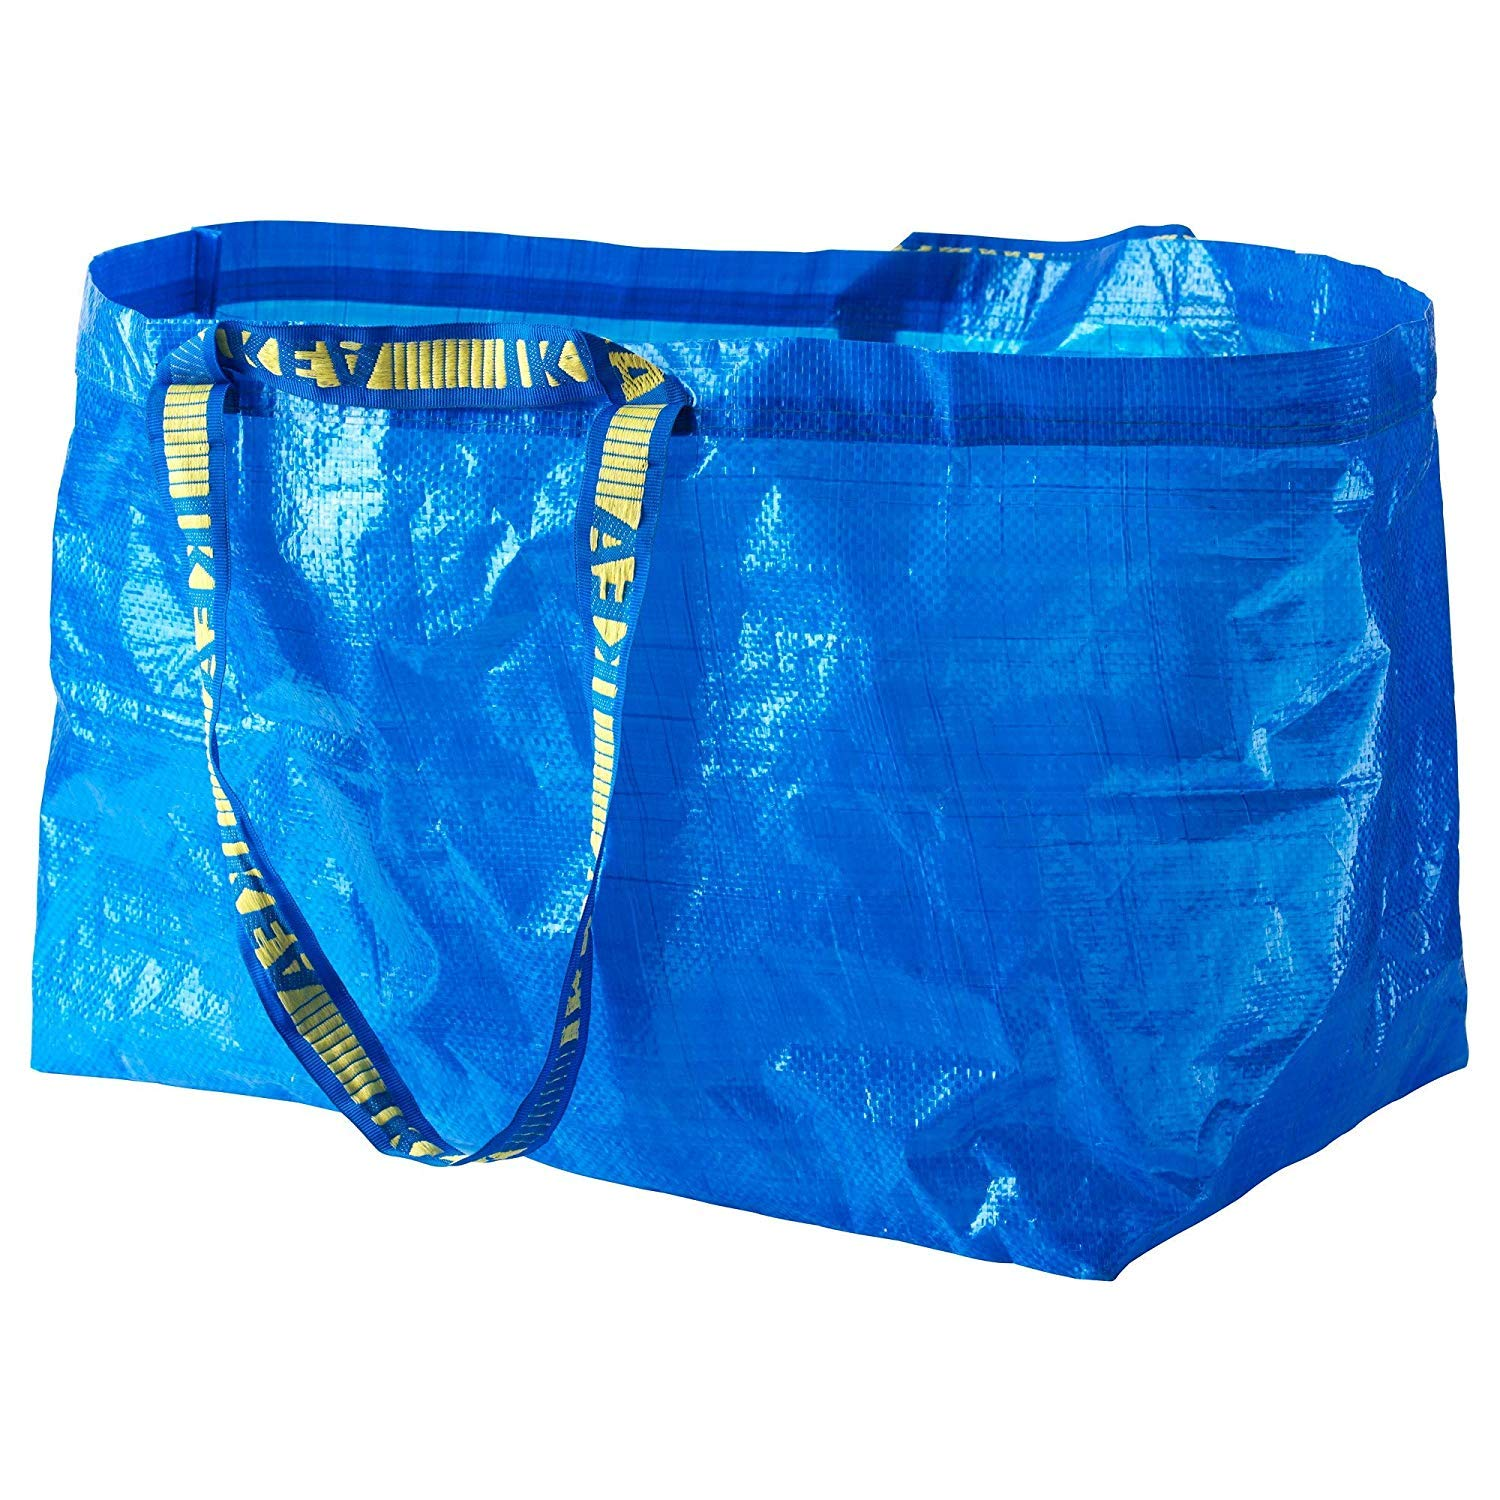 Amazon.com: Bolsas de mano IKEA, gran volumen, set de 5 ...